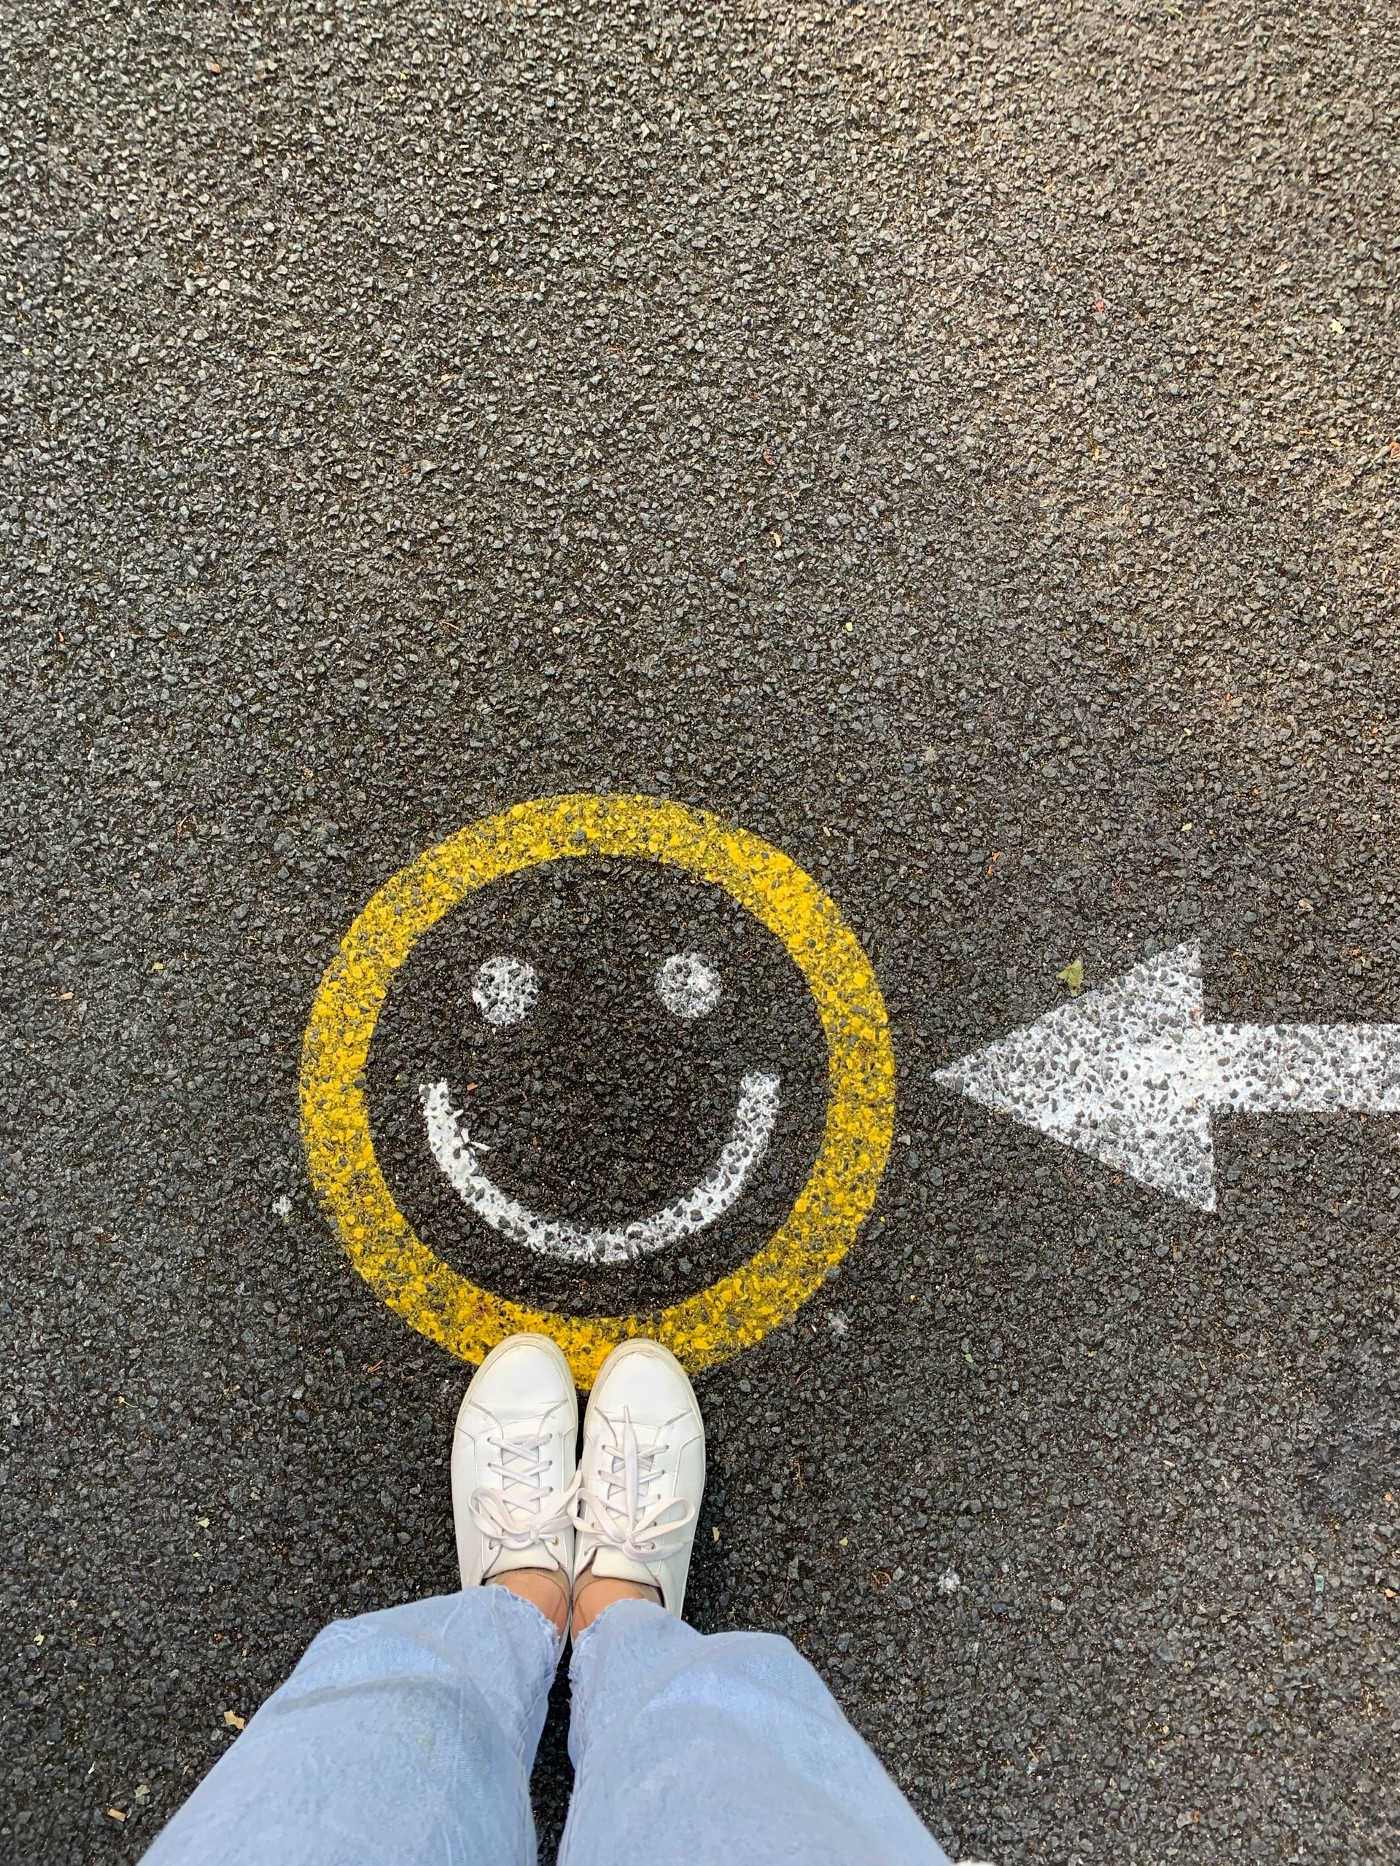 A person's feet in front of a smiling emoji